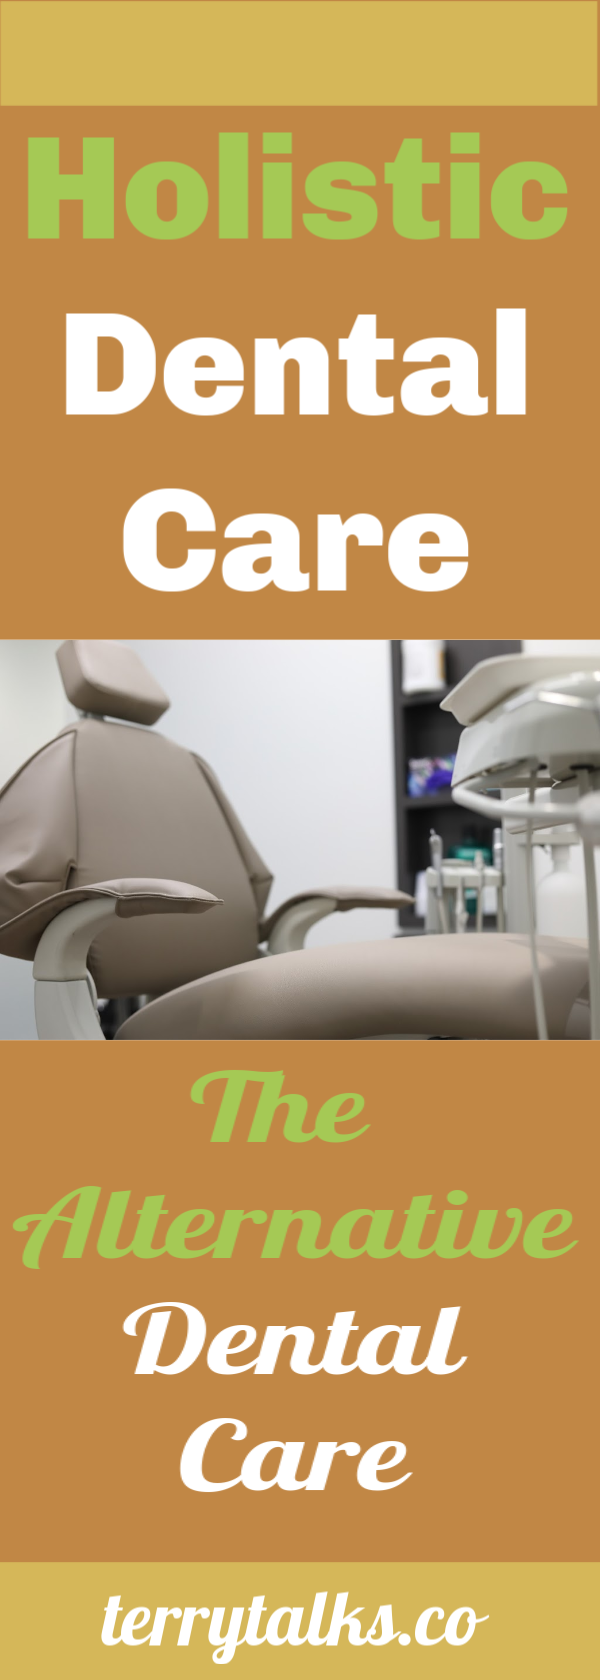 Holistic Dental Care, The Alternative Dental Care